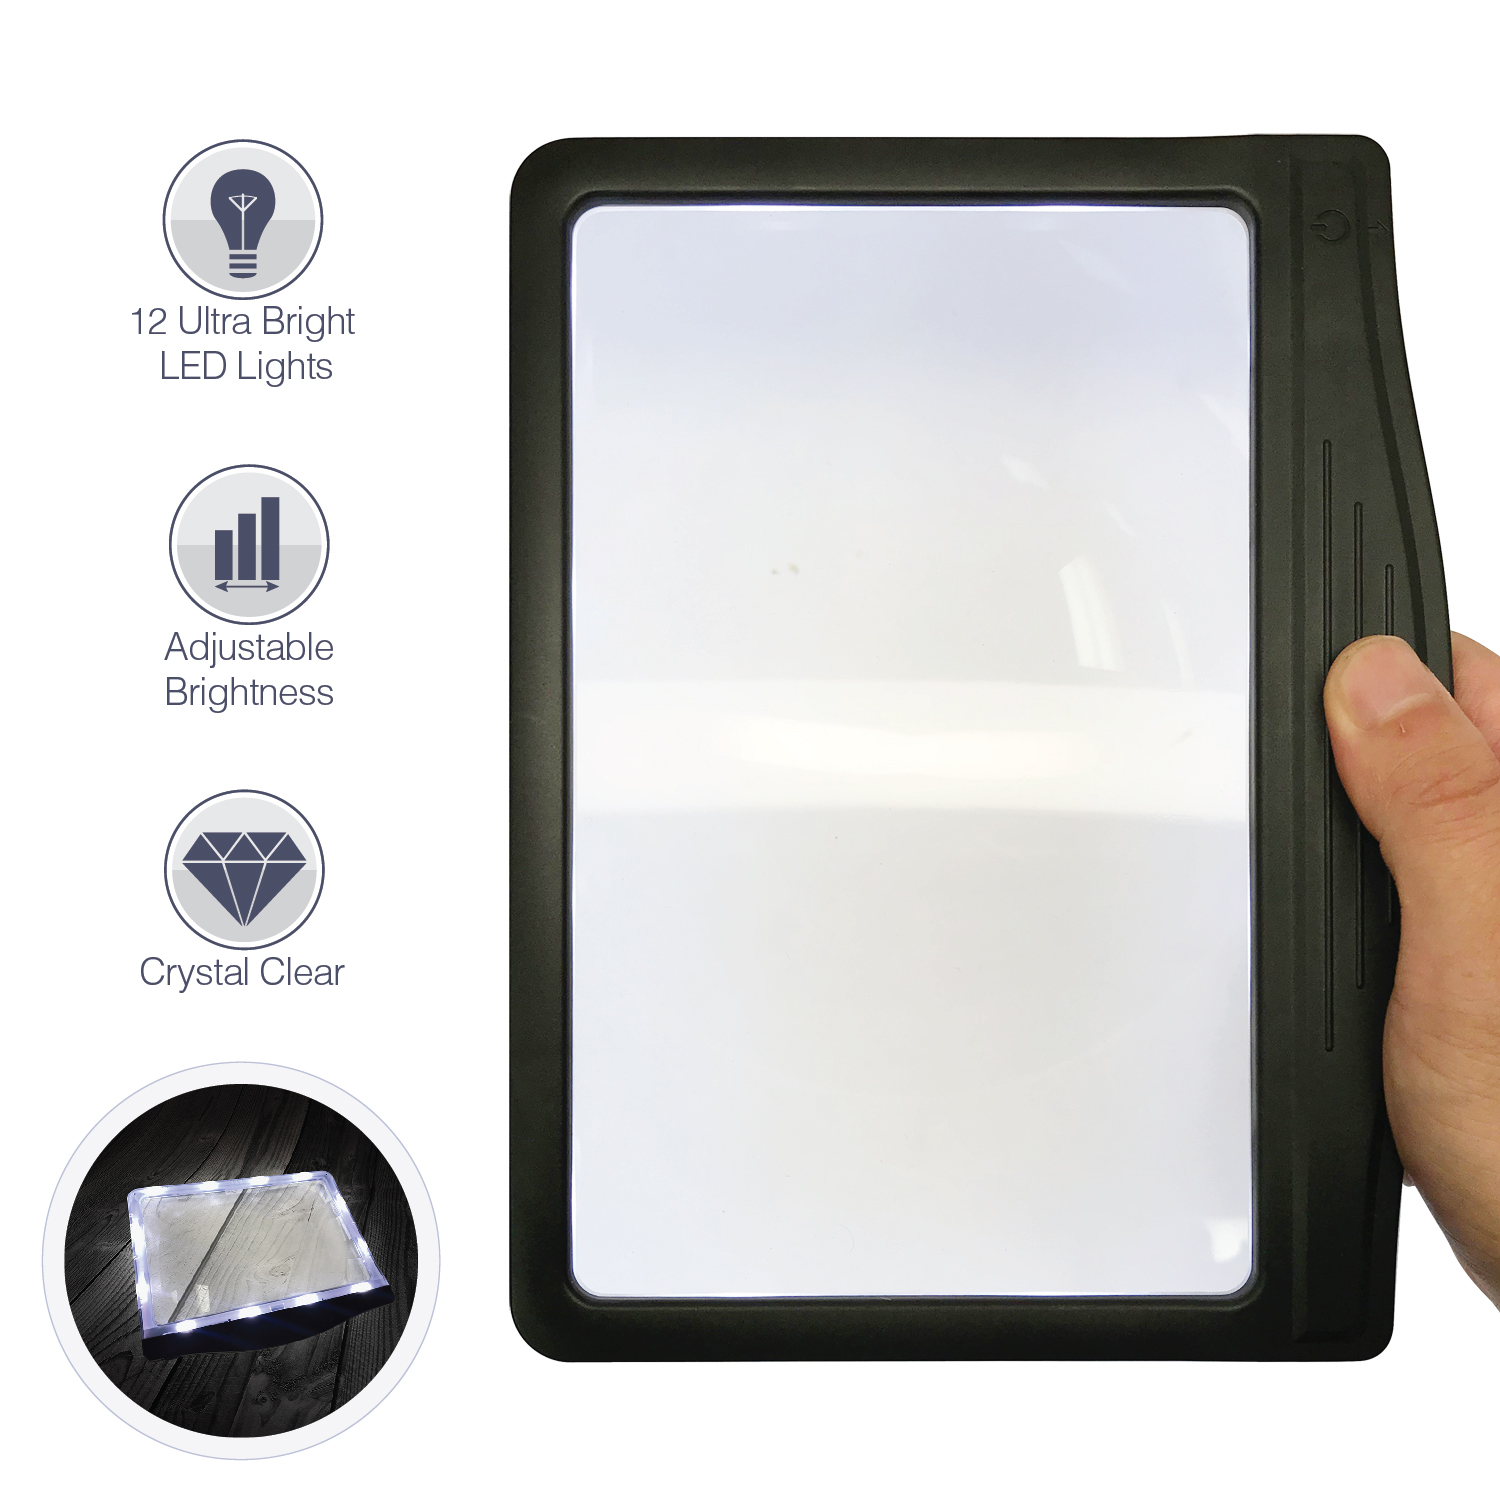 MagniPros 3X Large Ultra Bright LED Page Magnifier with 12 Anti-Glare Dimmable LEDs (Provide More Evenly Lit Viewing Area)-Ideal for Reading Small Prints & Low Vision Seniors with Aging Eyes